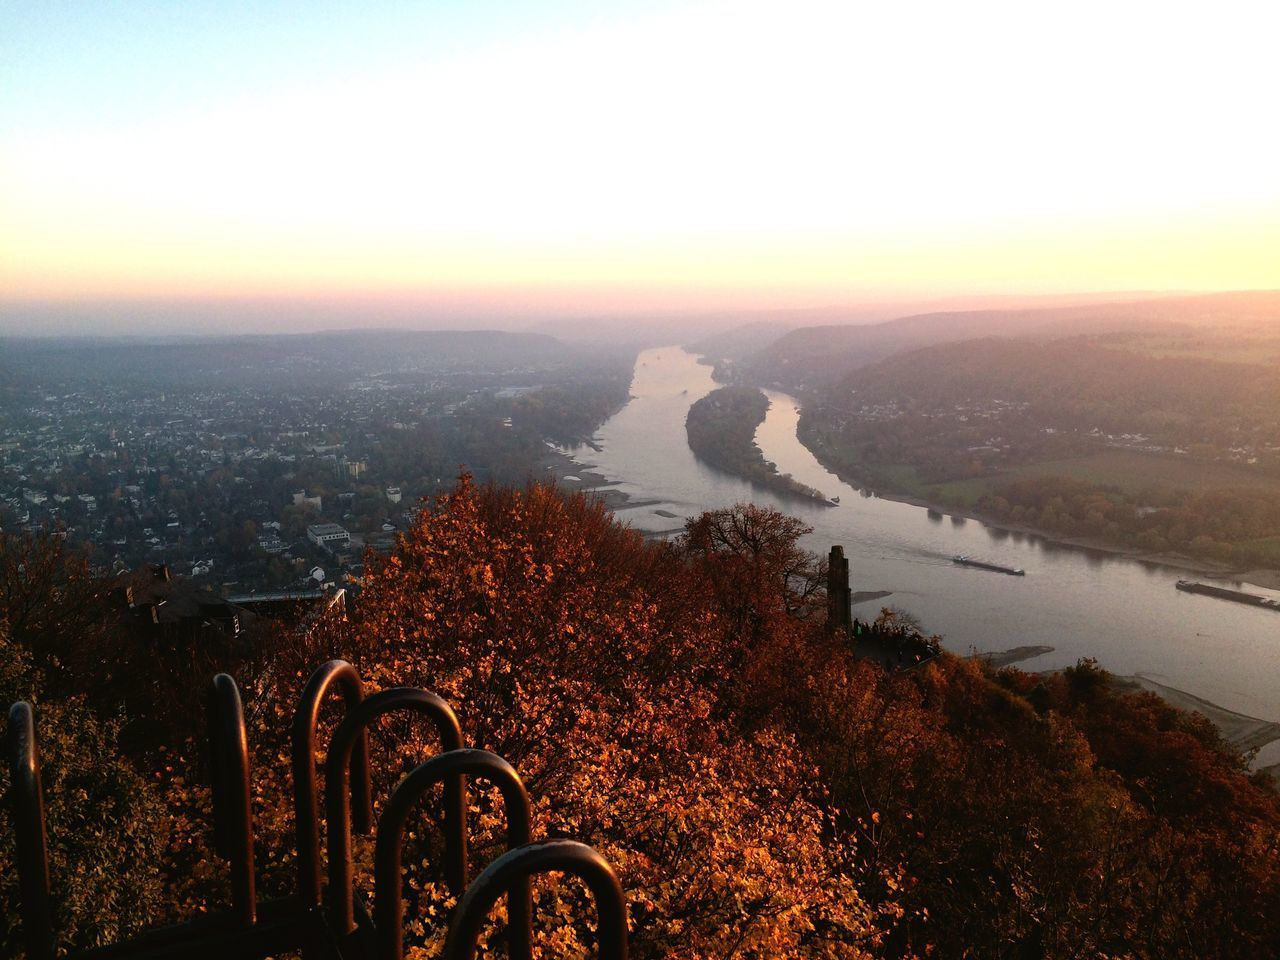 Königswinter Drachenfels Rhein Sunset Water Scenics City River Tranquil Scene Aerial View Cityscape Sun Travel Destinations Sea Tranquility Nature Beauty In Nature Outdoors Remote Sky Orange Color Blue Distant